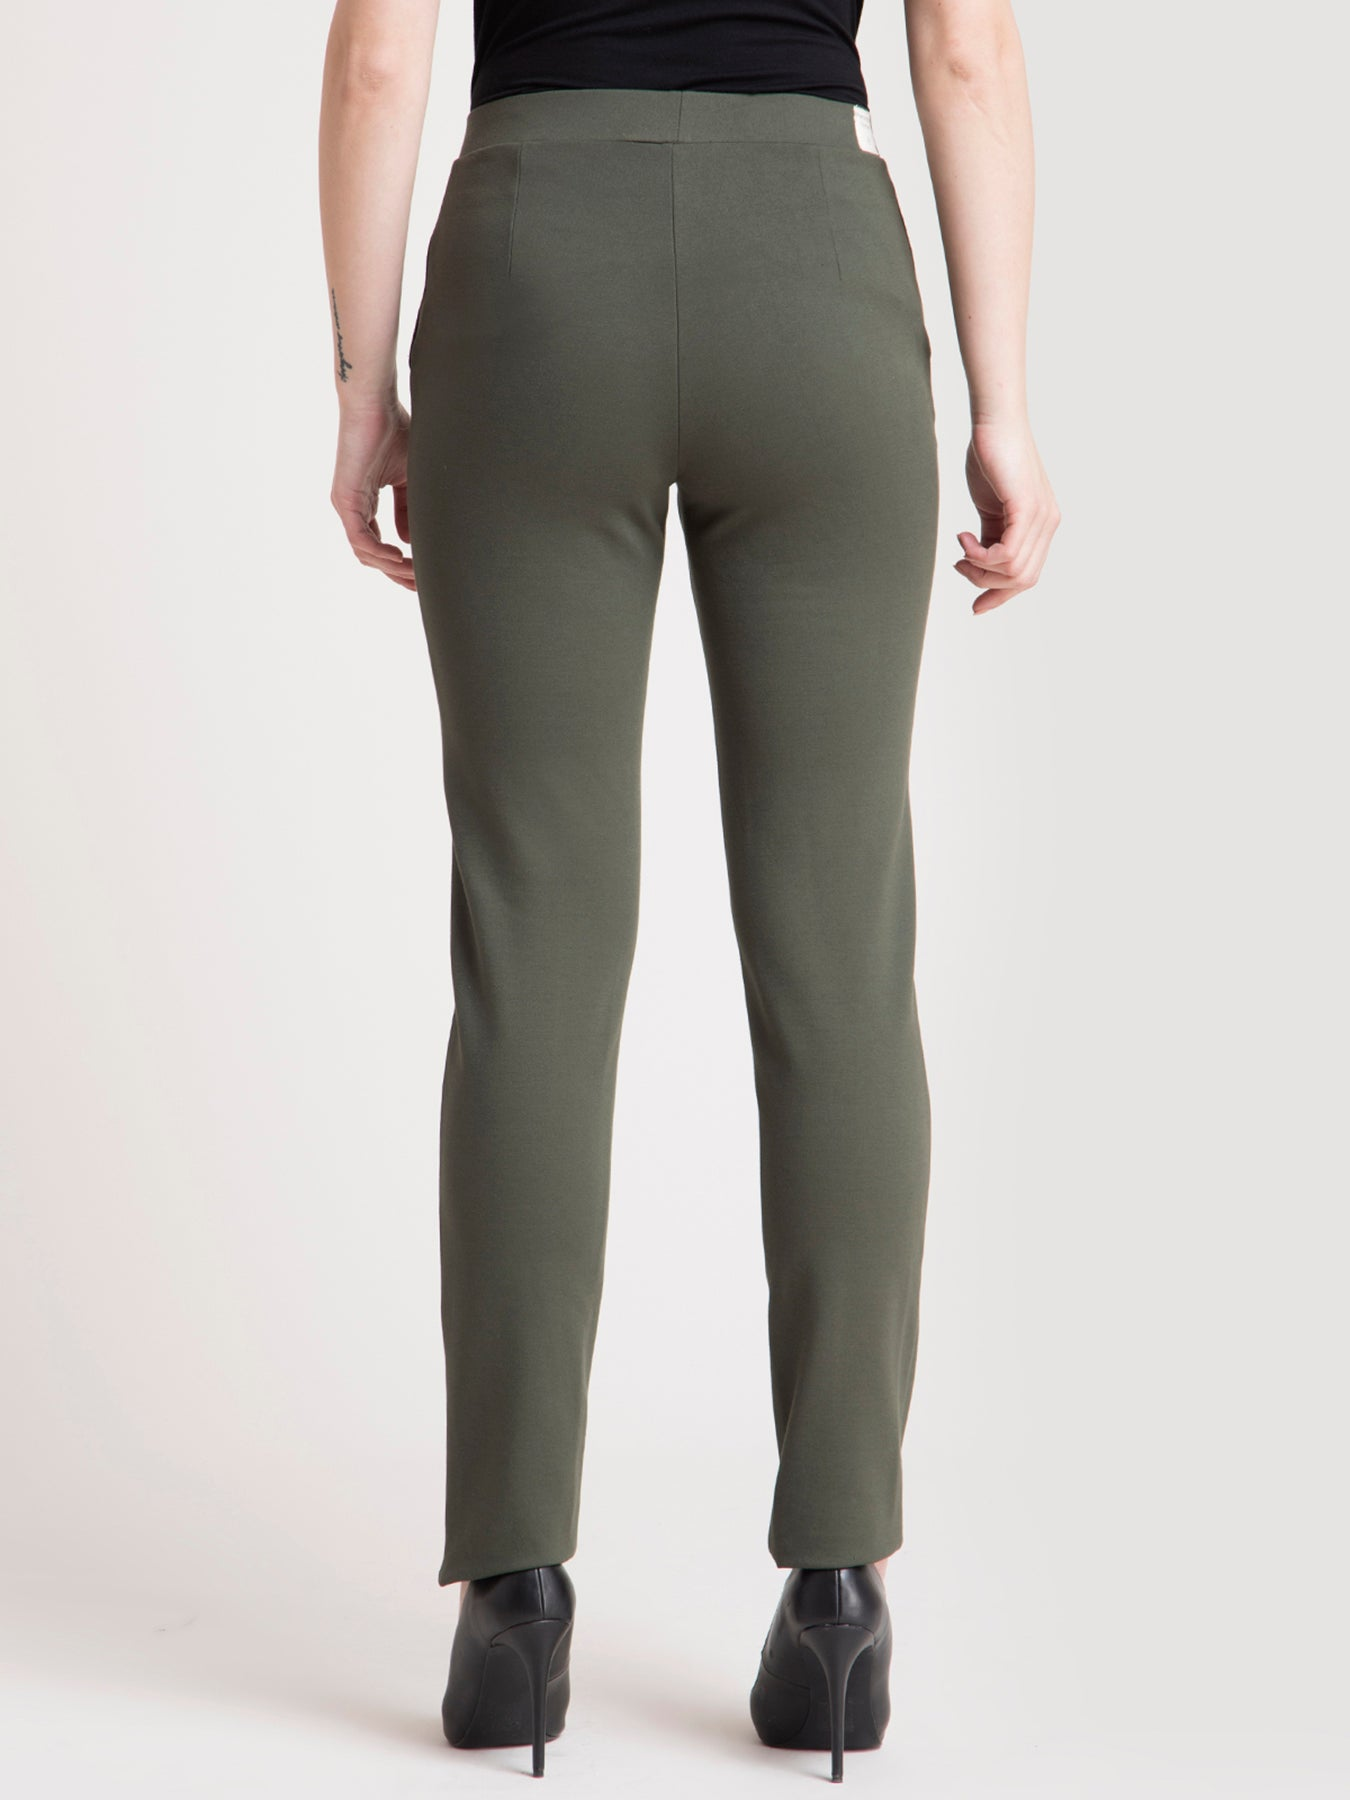 4 Way Stretch LivIn Pants - Olive